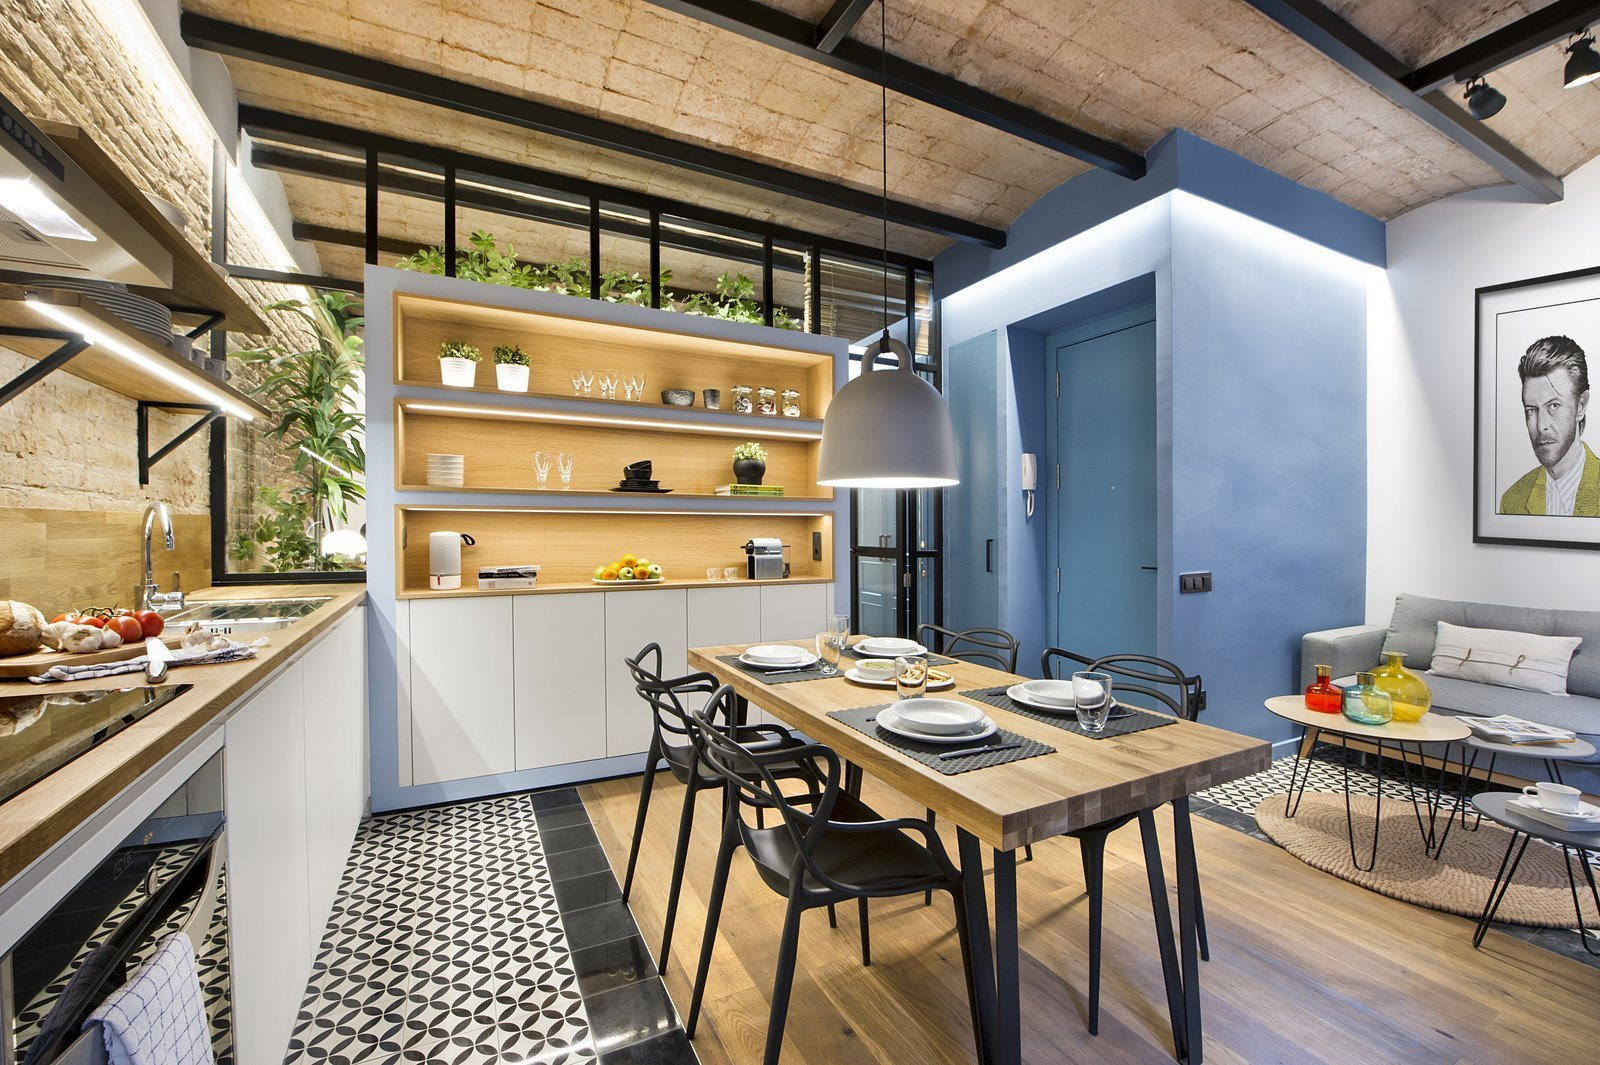 Dining Room, Chair, Pendant Lighting, Ceiling Lighting, Table, Light Hardwood Floor, and Ceramic Tile Floor  Photo 4 of 11 in A Smart Layout Maximizes Space in This Compact Urban Beach Apartment in Barcelona